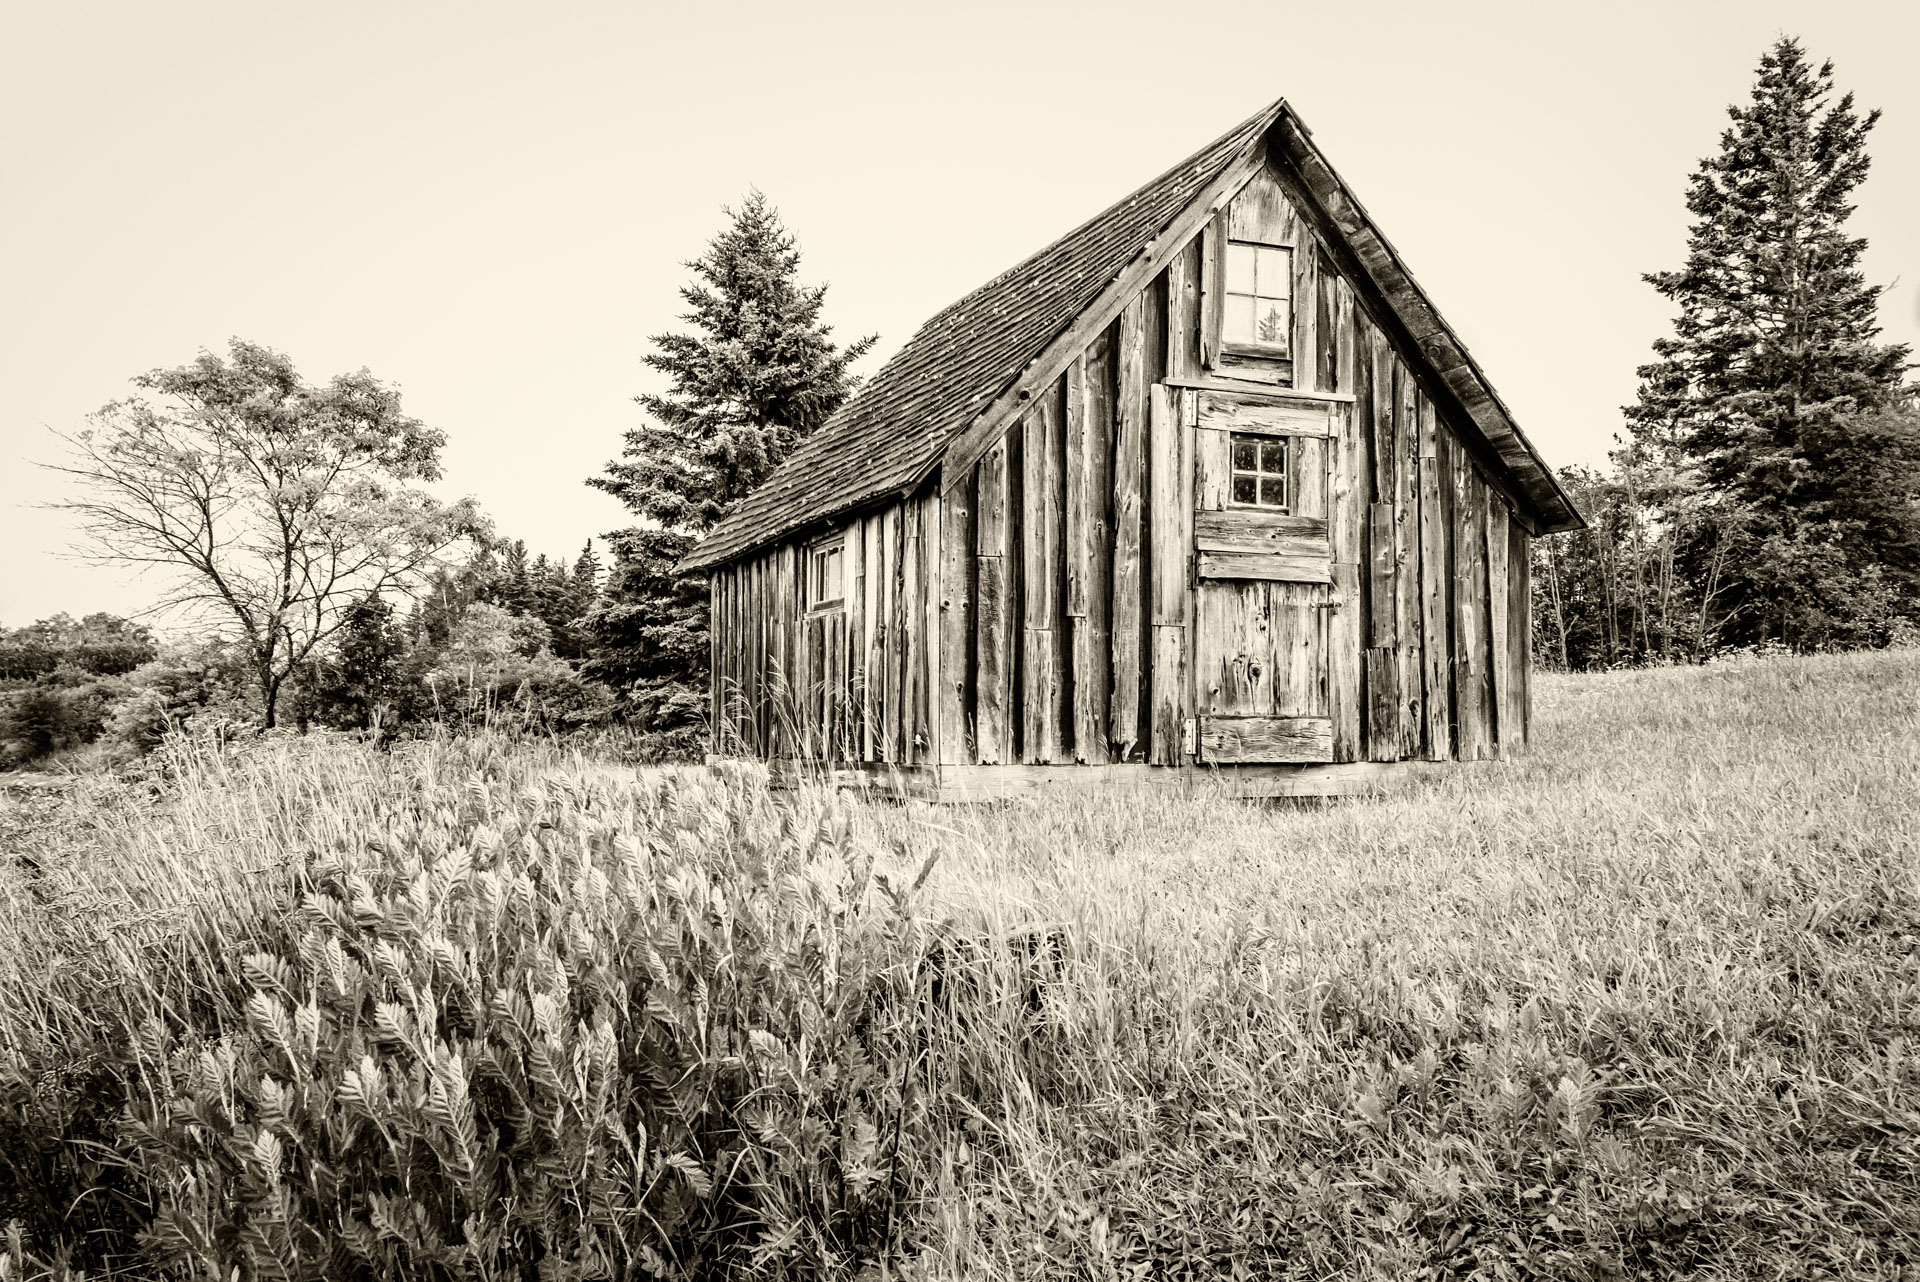 Abandoned Fish Shack - Monochrome Print (Open) - Cindy Carlsson